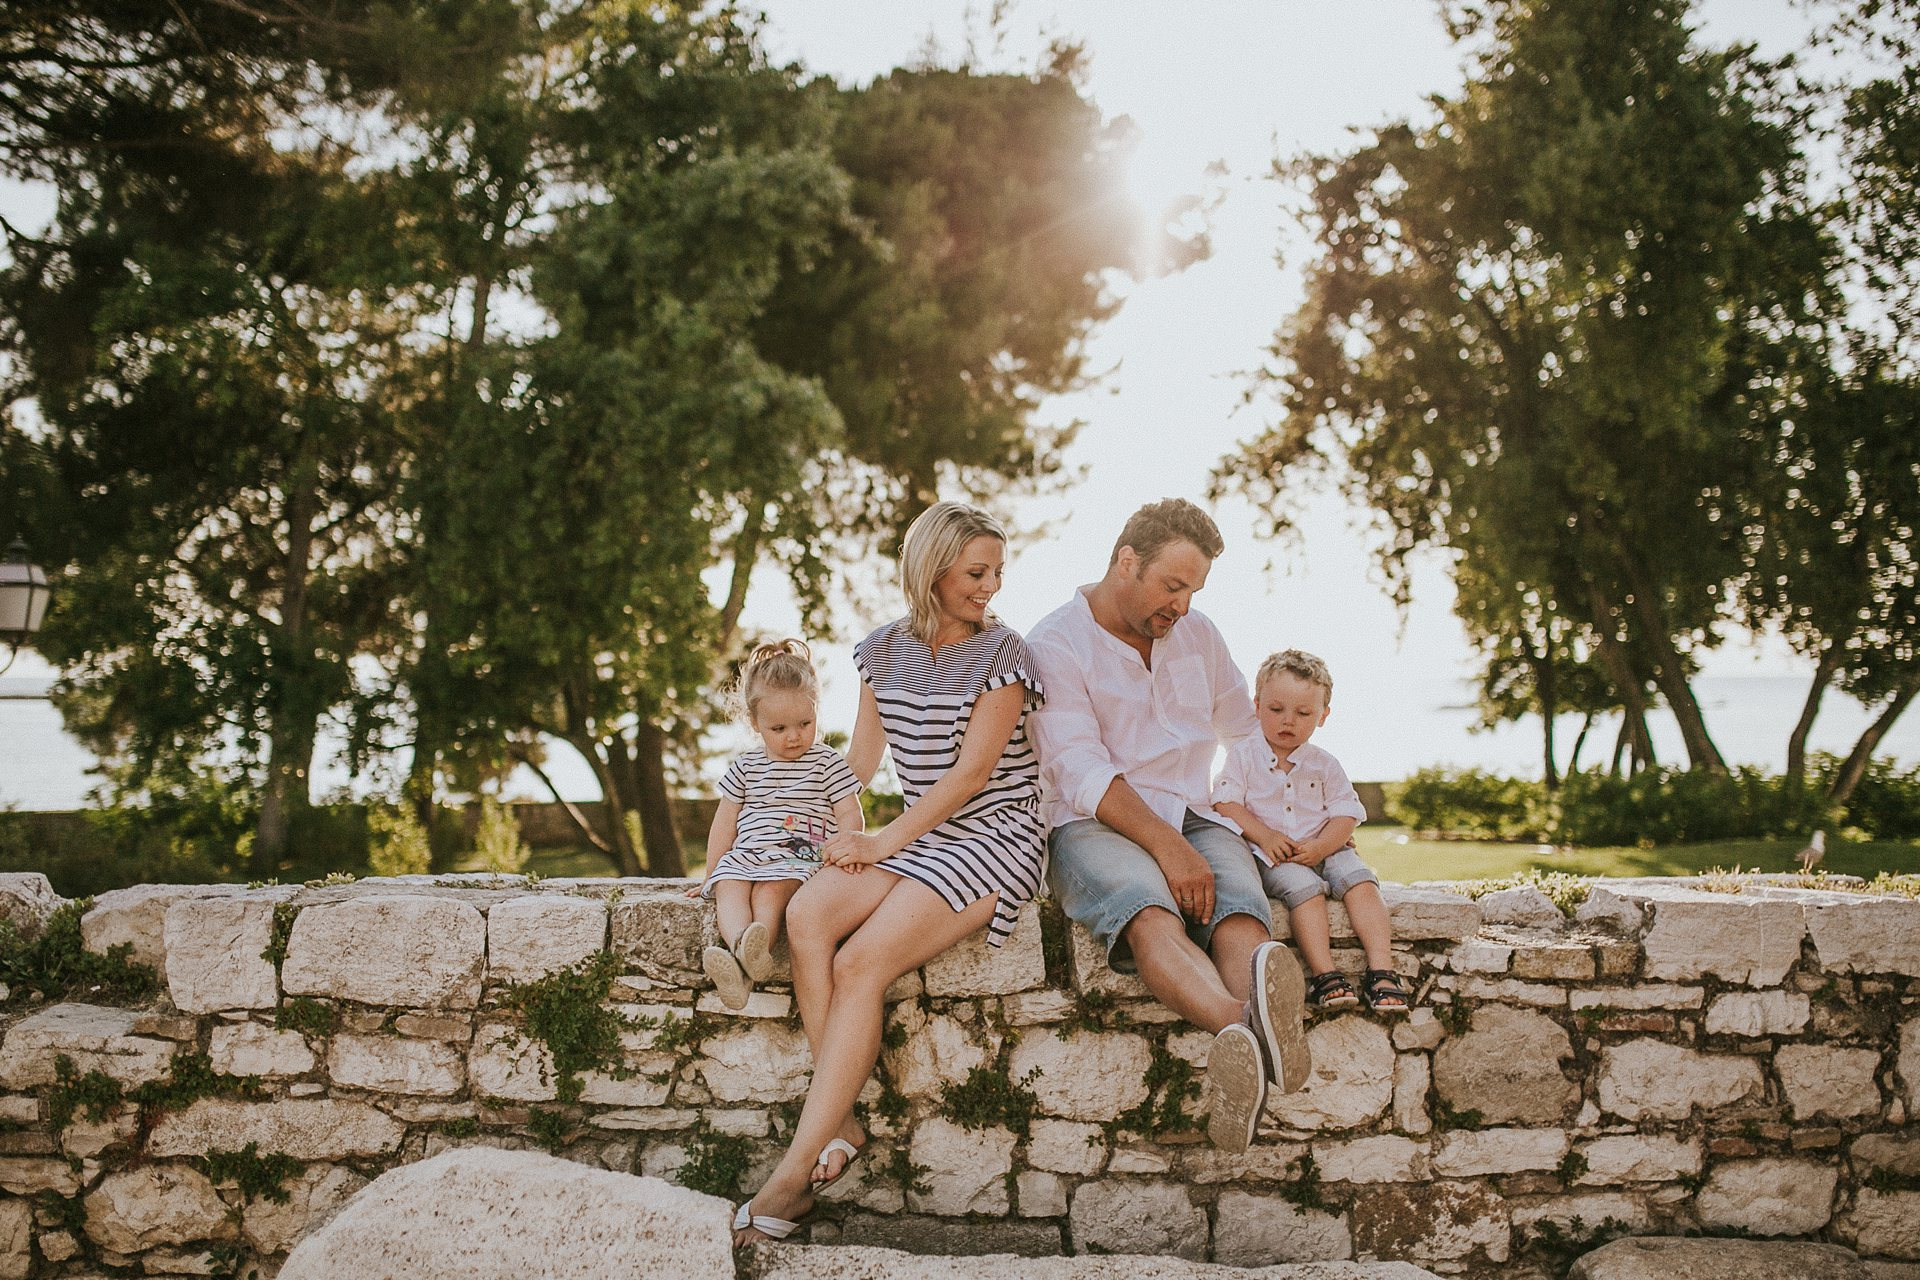 Dalibora_Bijelic_Croatia_Istria_family_vacation_photographer_0008.jpg